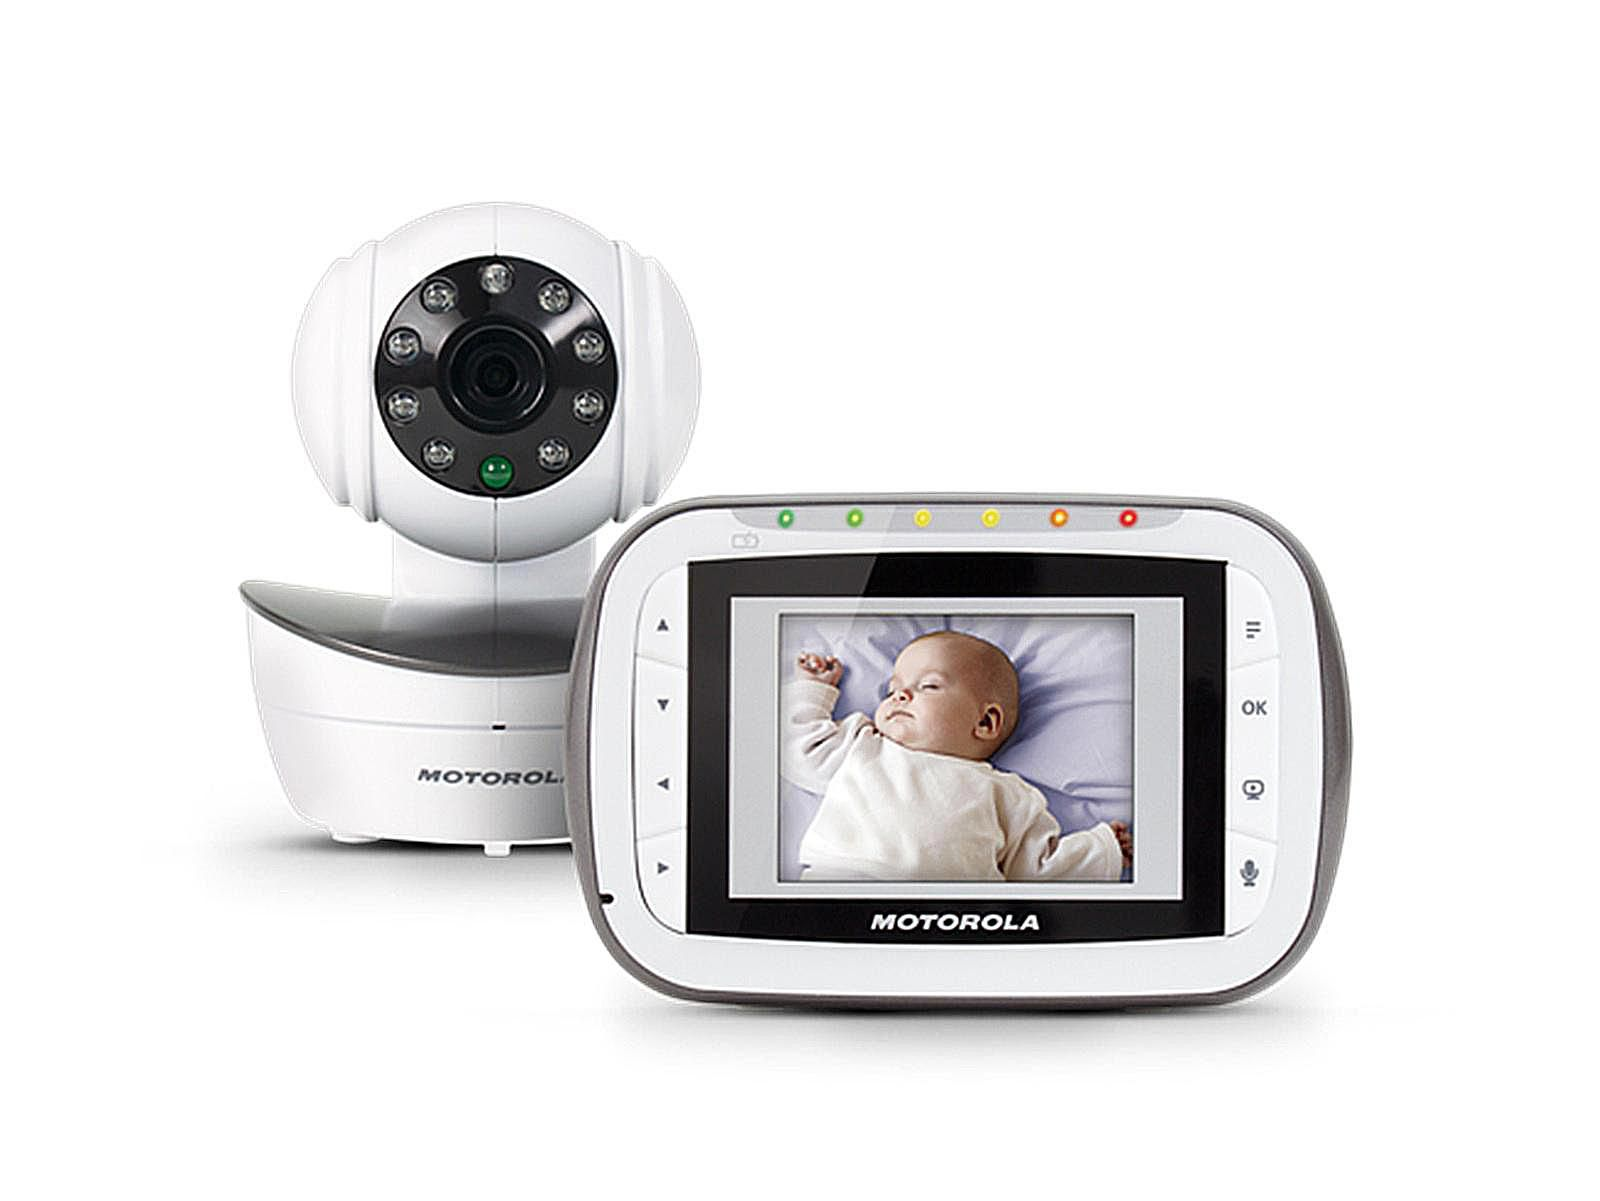 Motorola Mbp41 Remote Wireless Baby Monitor Review